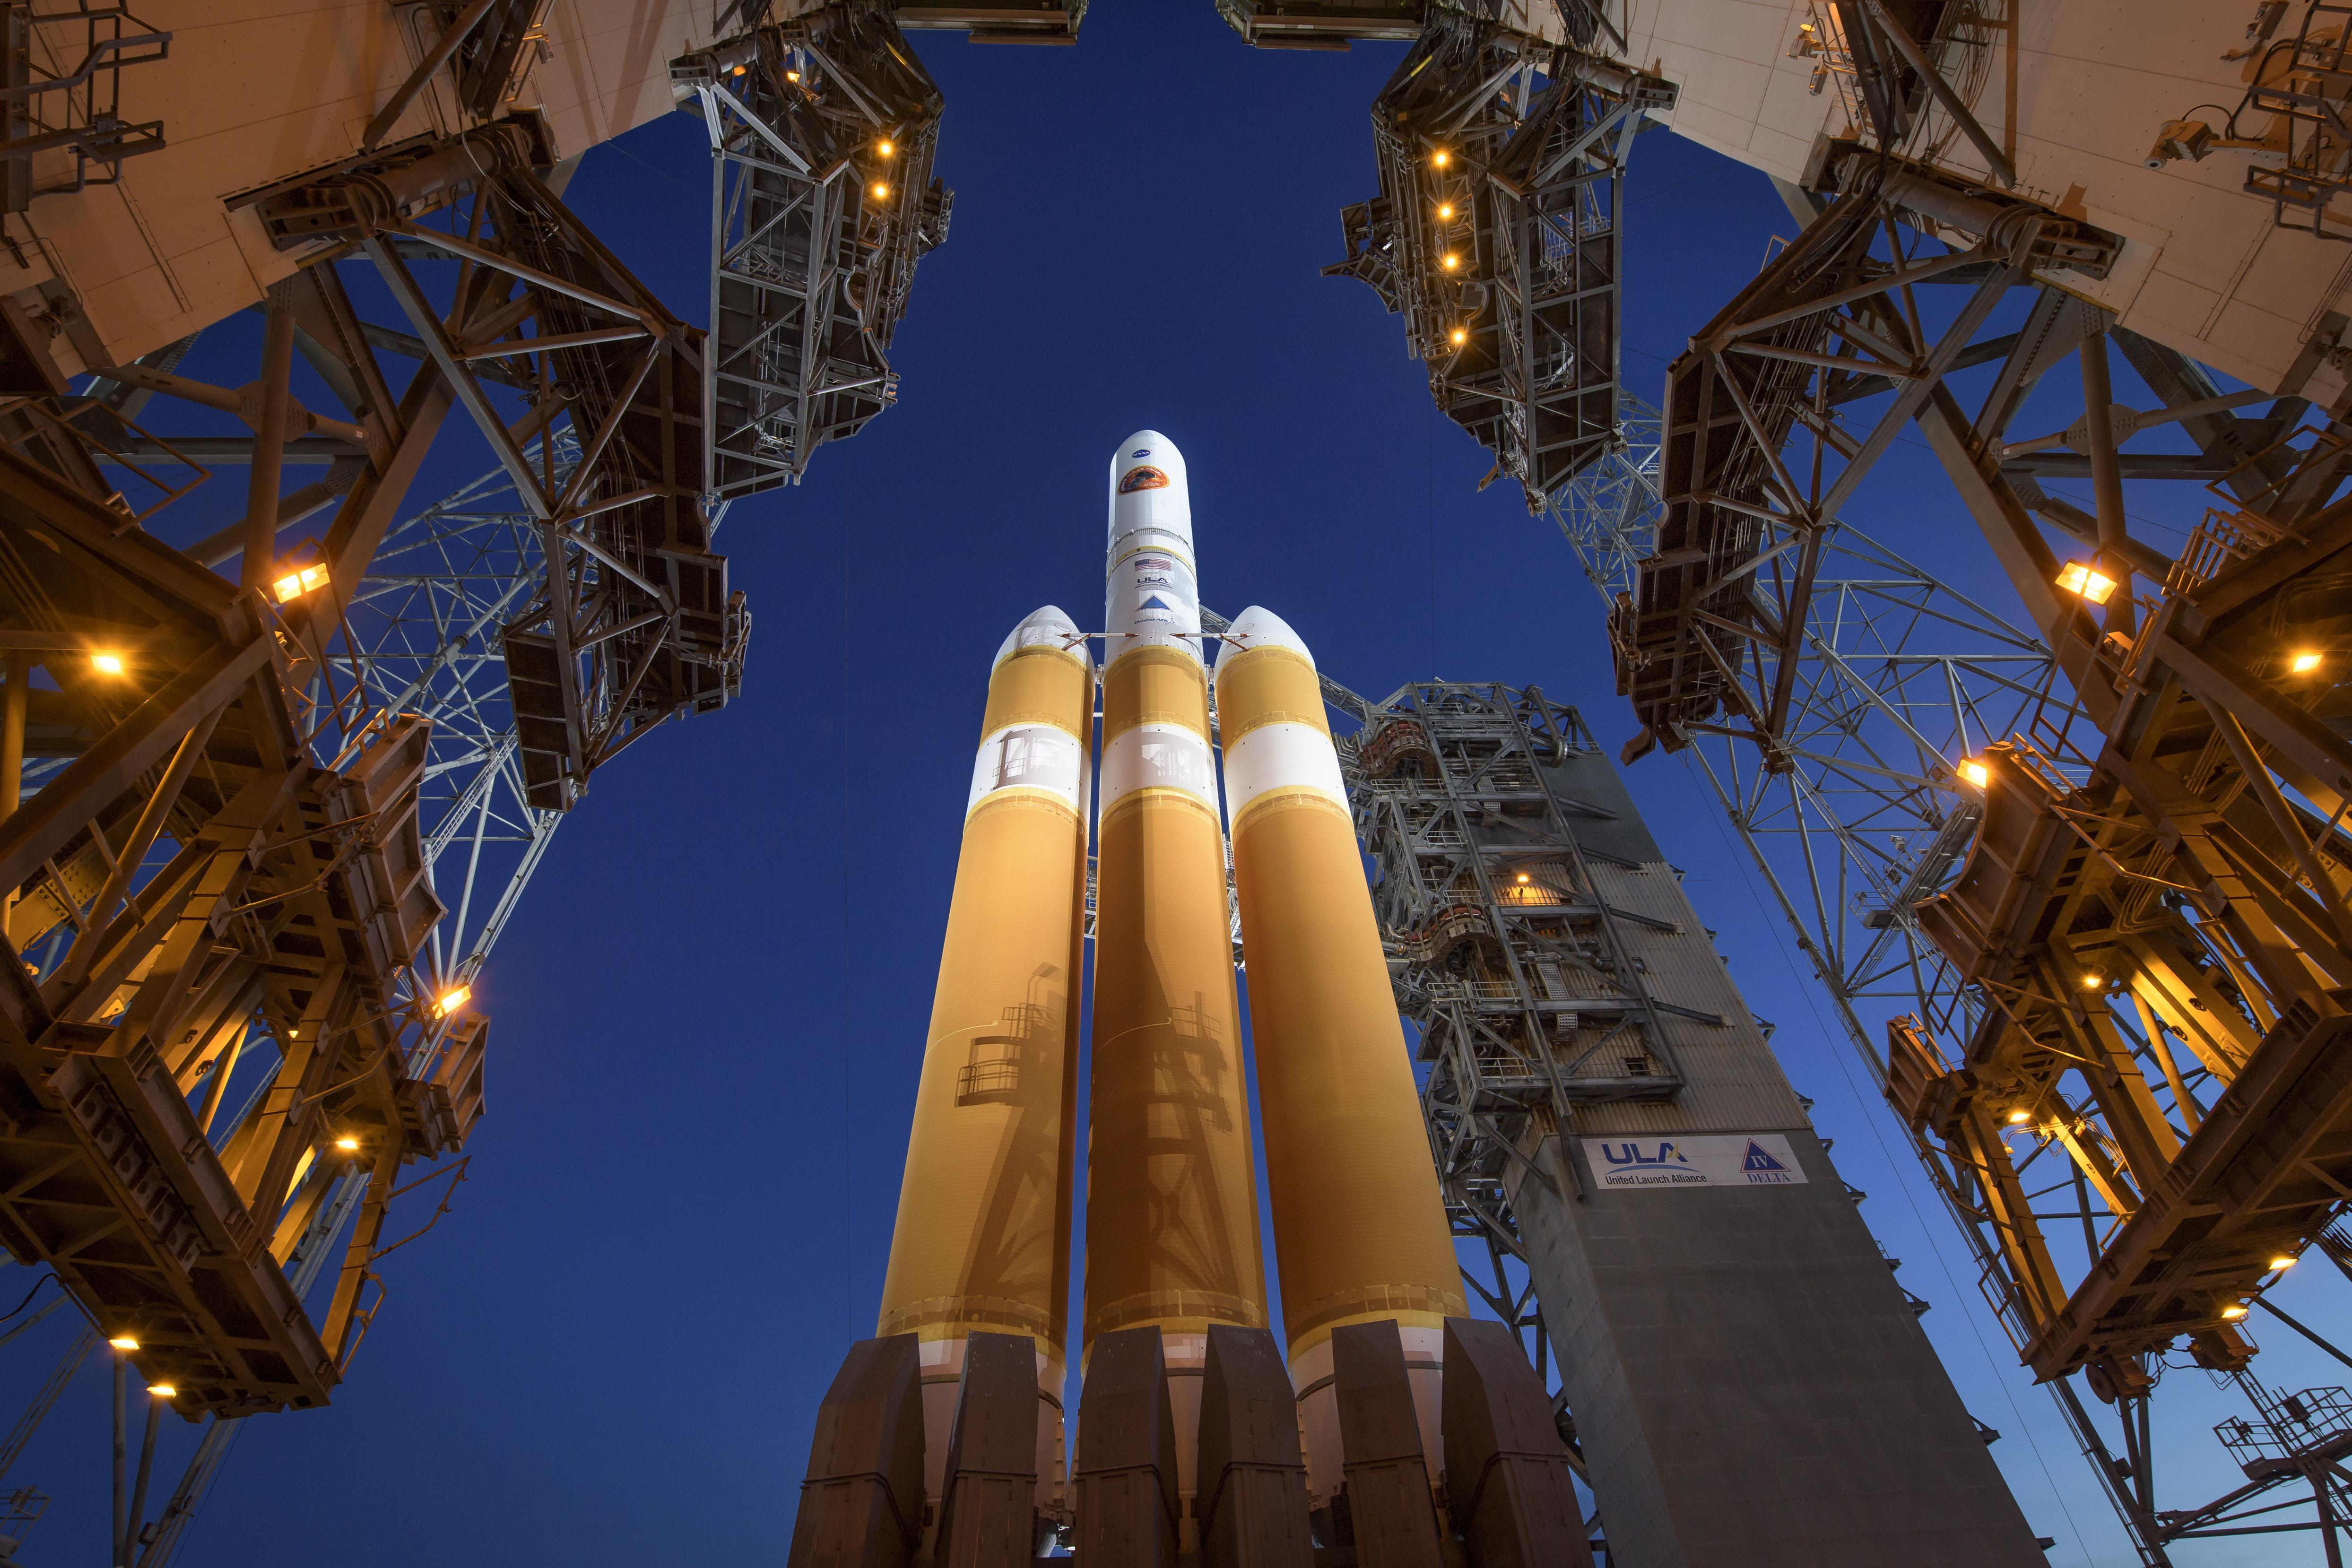 The Delta IV heavy rocket with the Parker Solar Probe onboard at Cape Canaveral Air Force Station in Cape Canaveral, Fla., on Aug 11